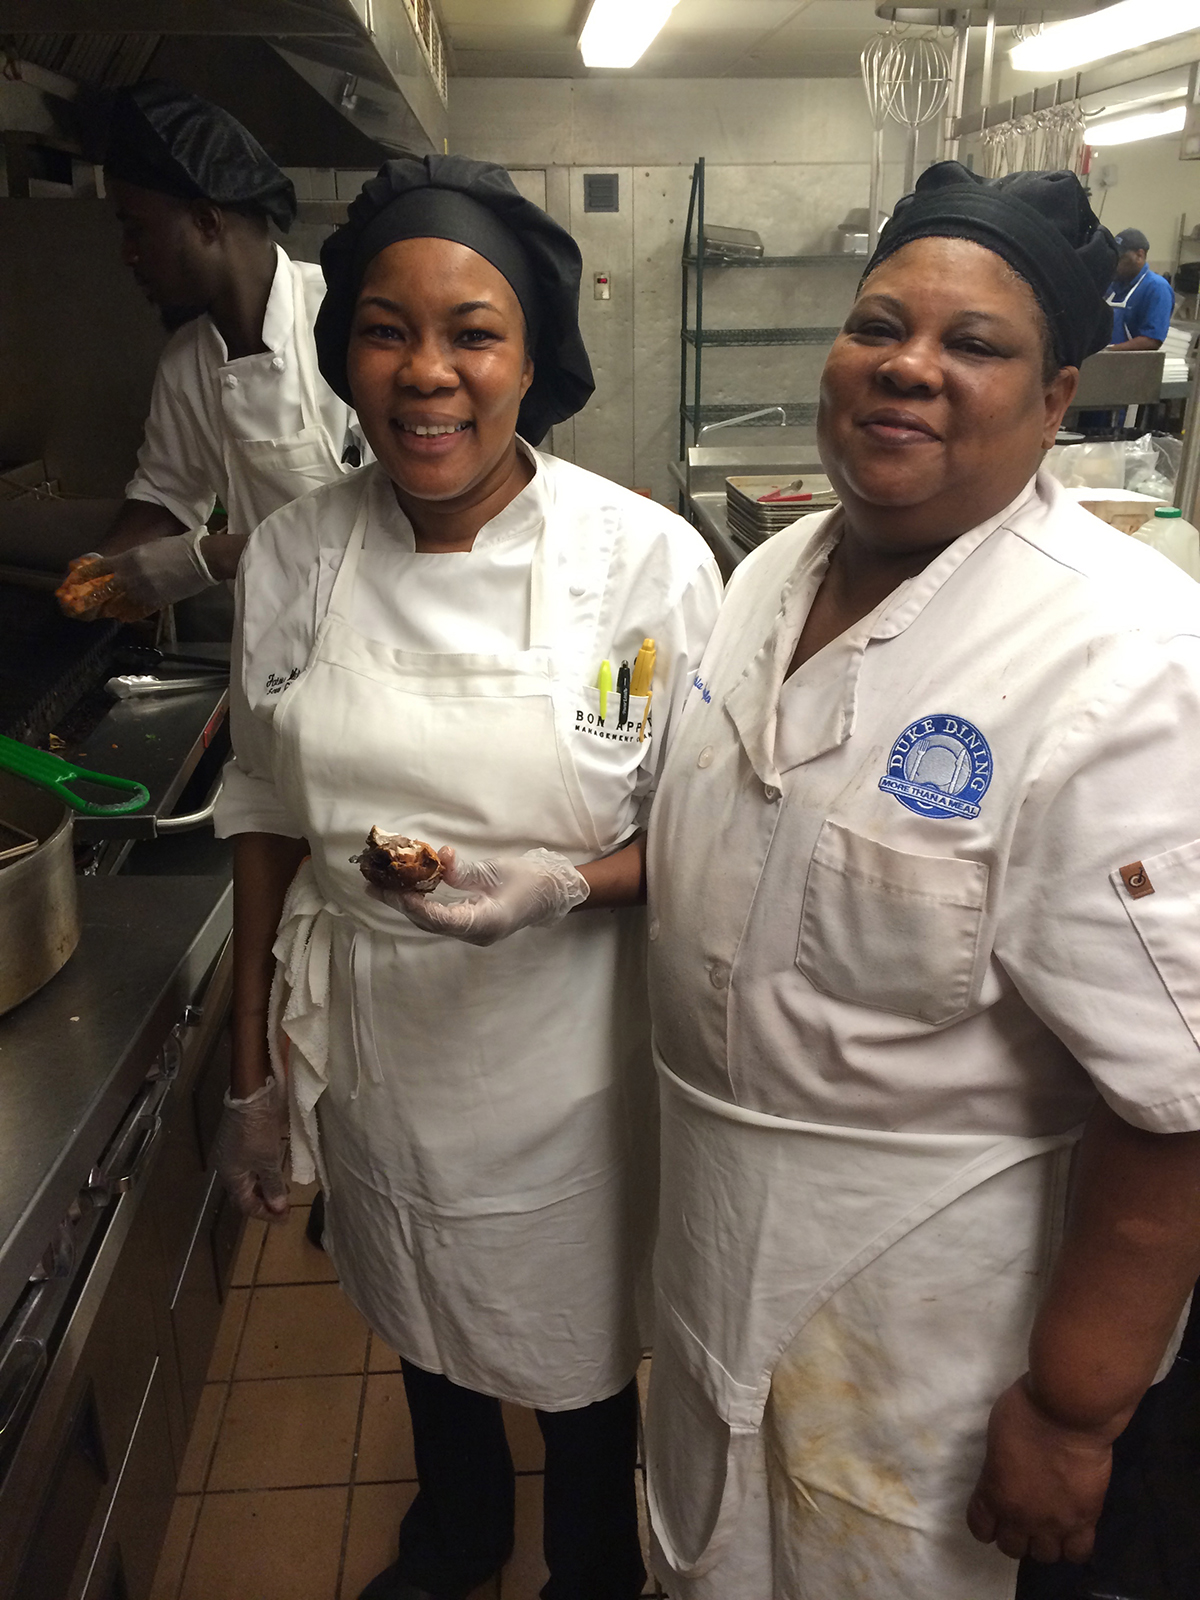 UPenn Sous Chef Fatou Wilson and Duke Dining Lead Production Worker Cynthia Dantzler prepare traditional Senegalese cuisine